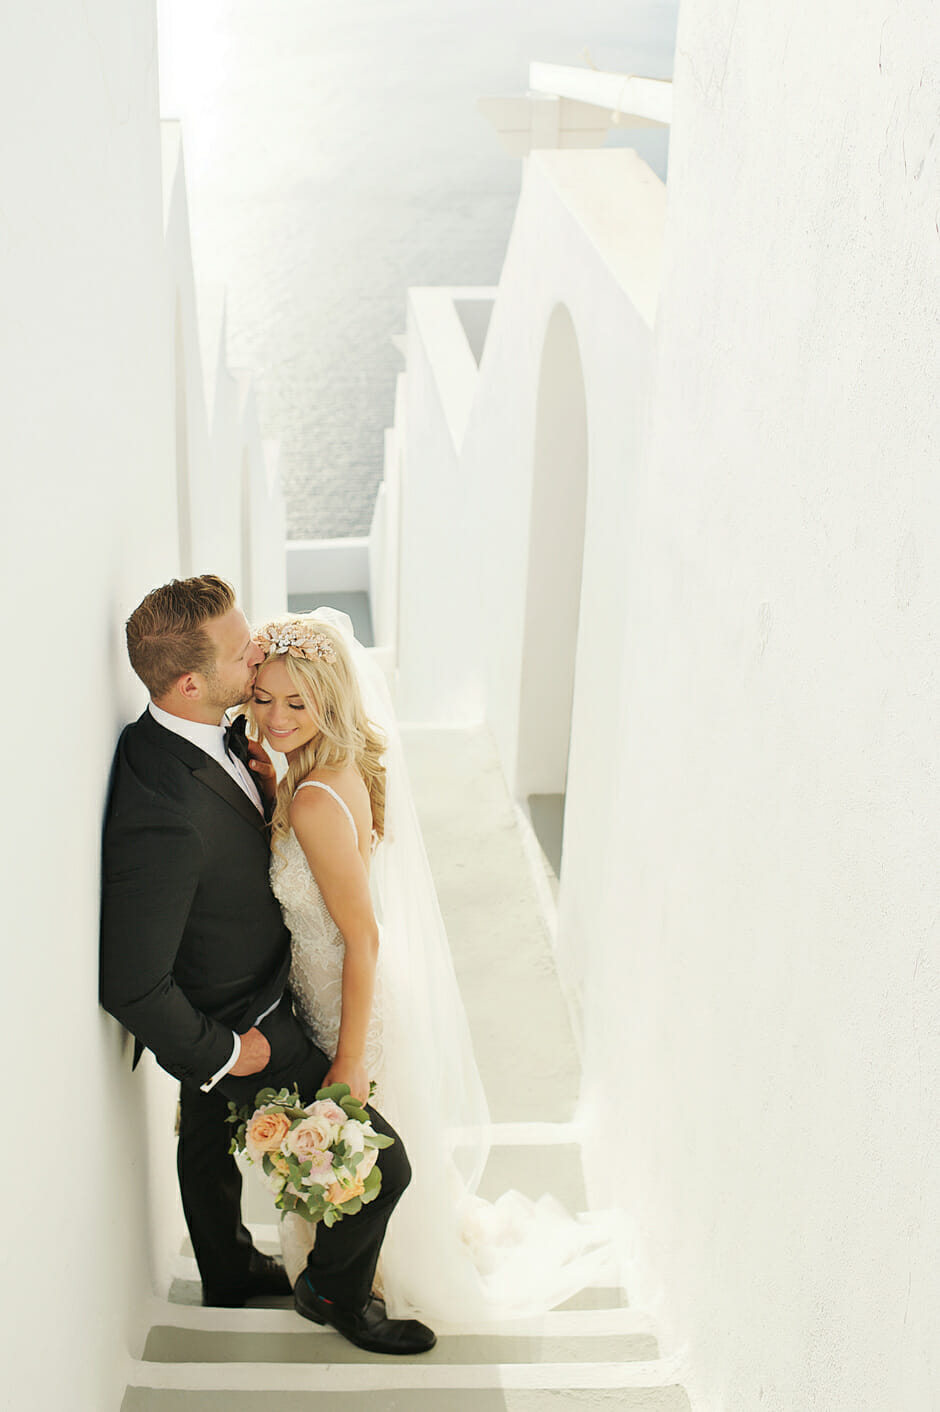 wedding portrait in le ciel santorini